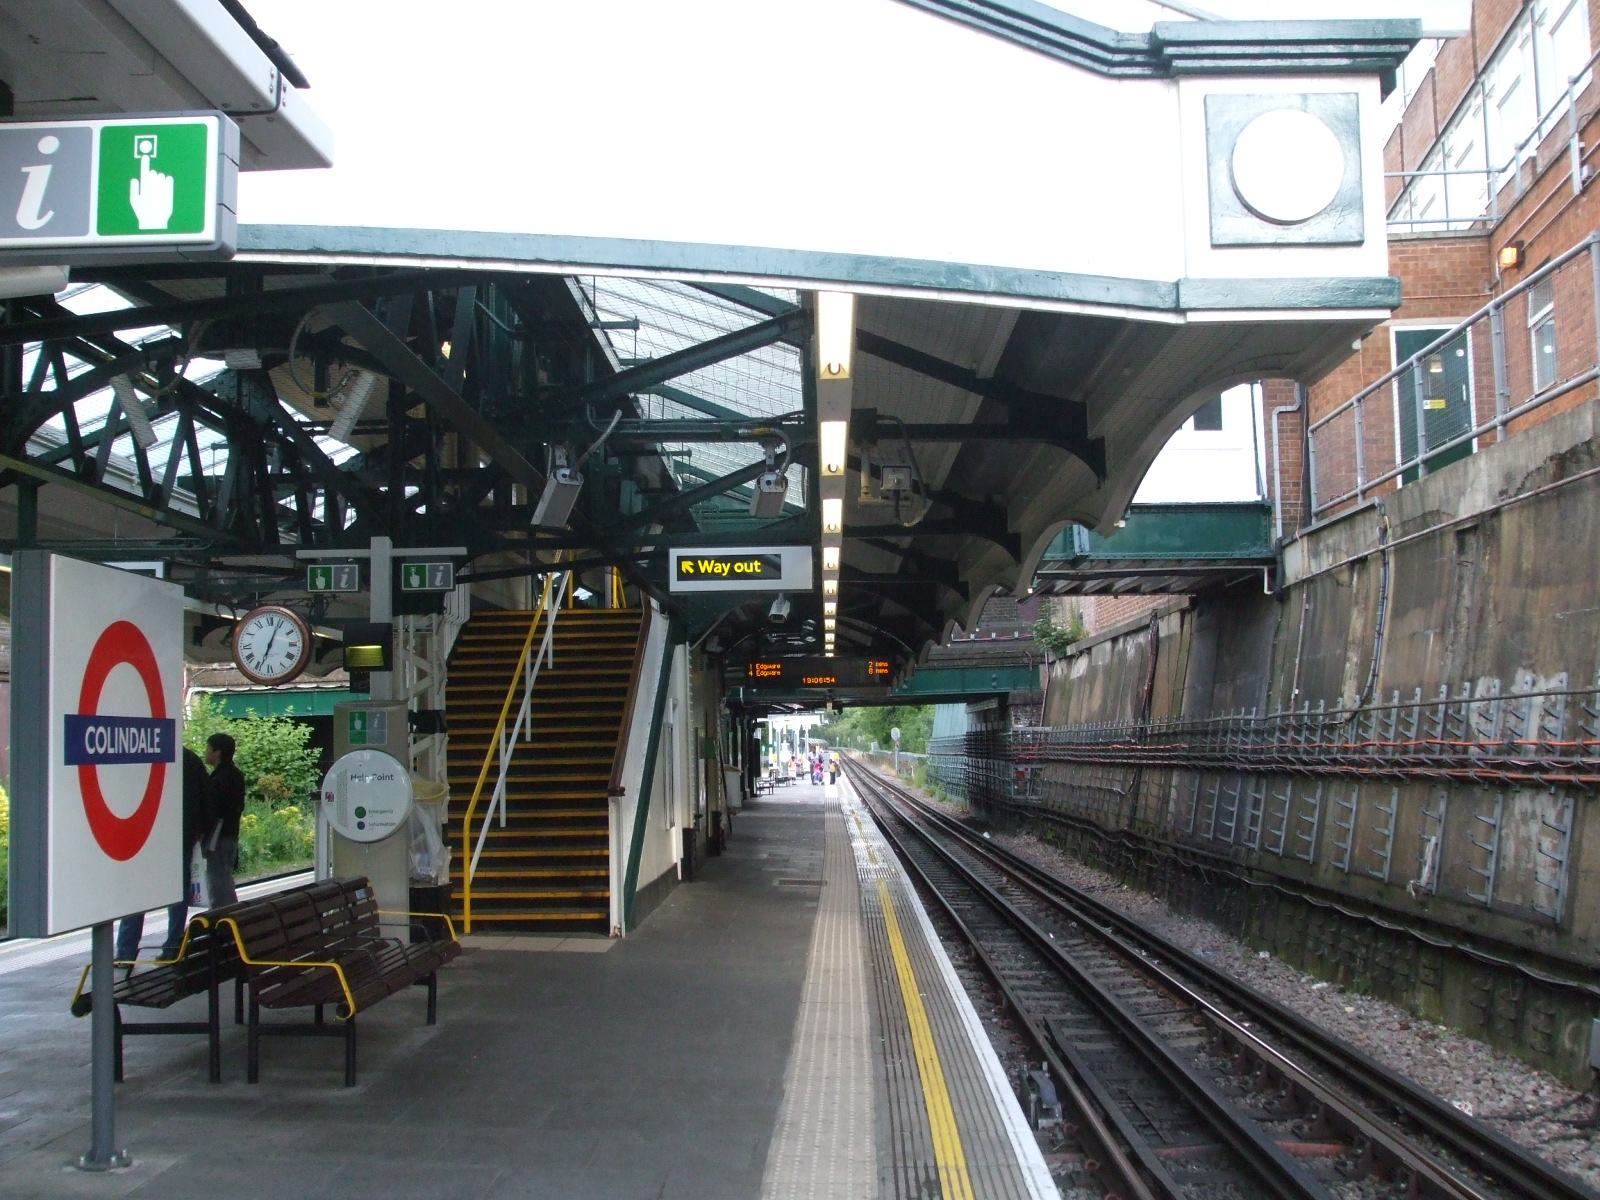 File:Colindale station southbound JPG - Wikimedia Commons